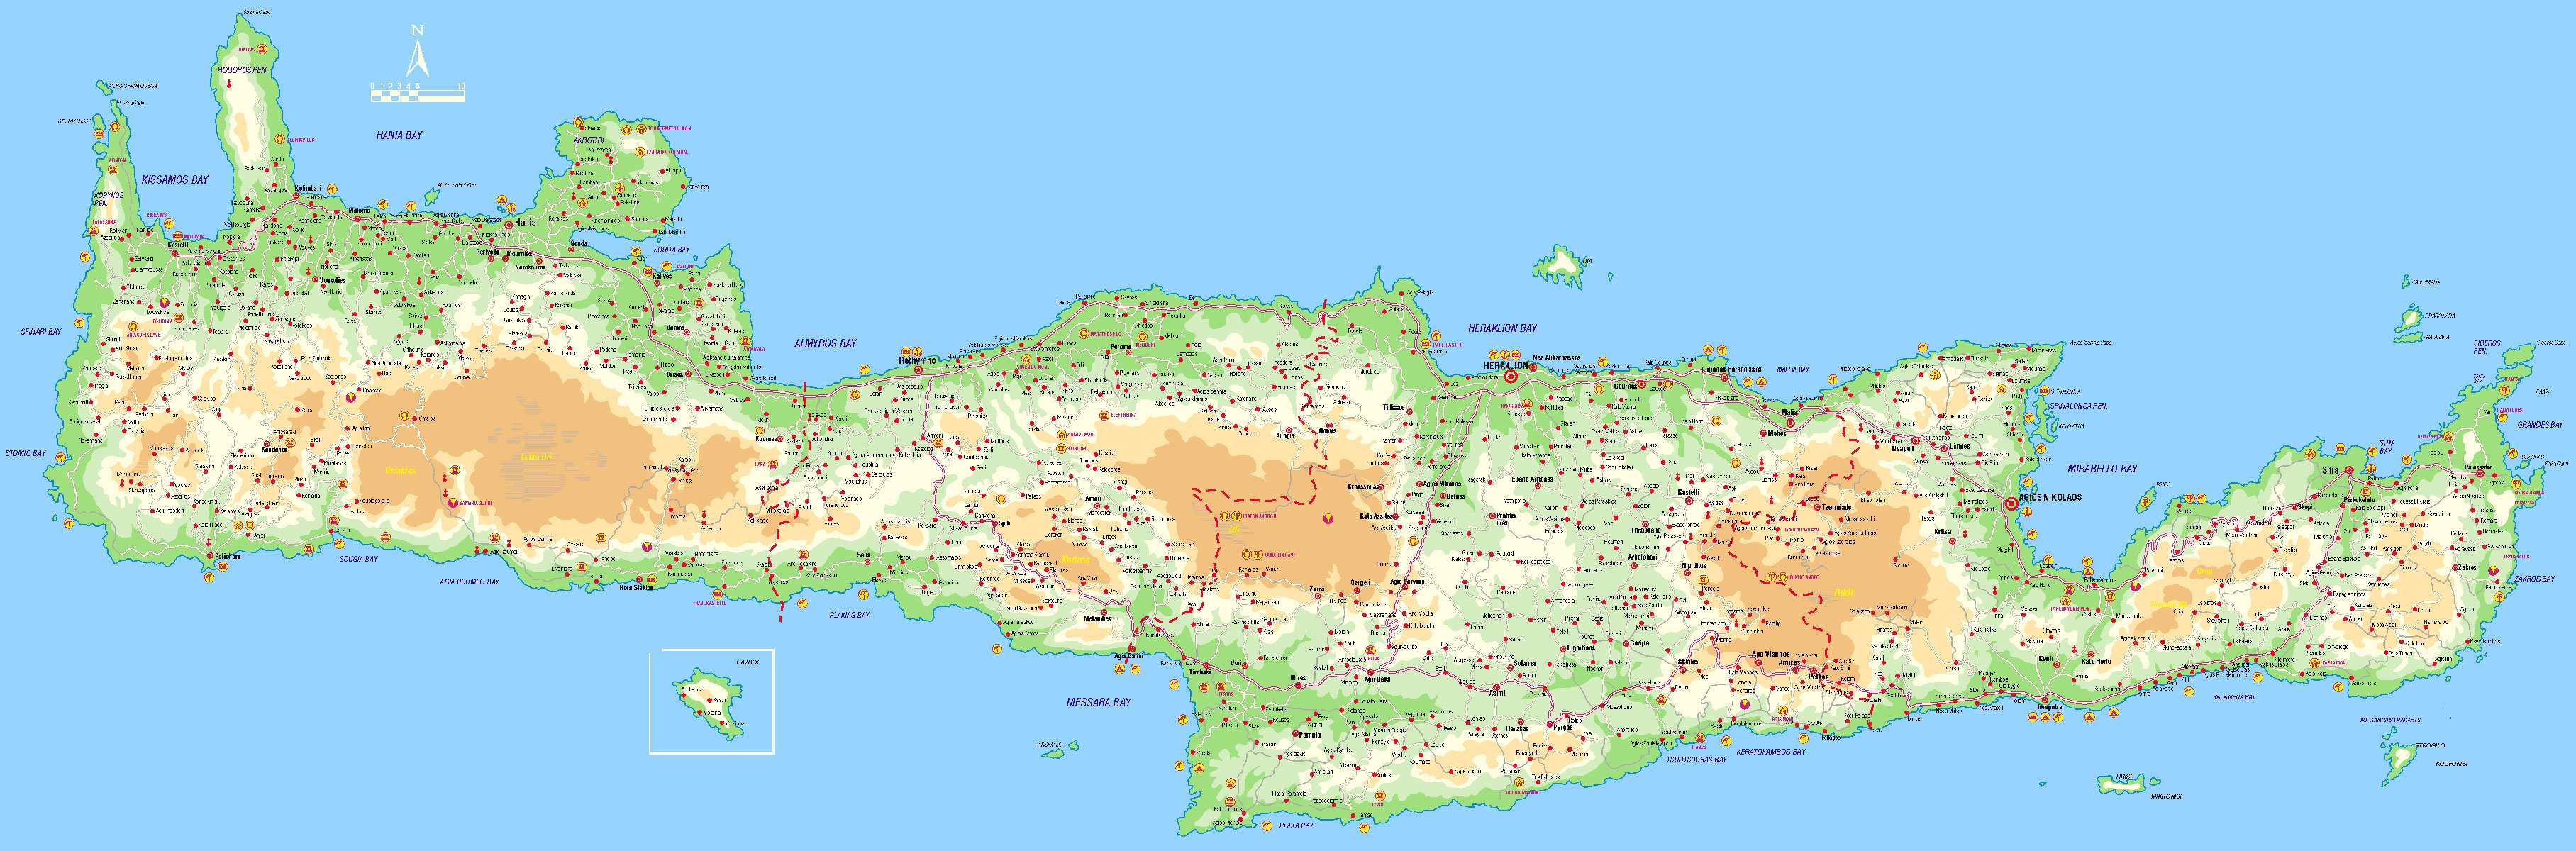 Large Crete Maps For Free Download And Print High Resolution And